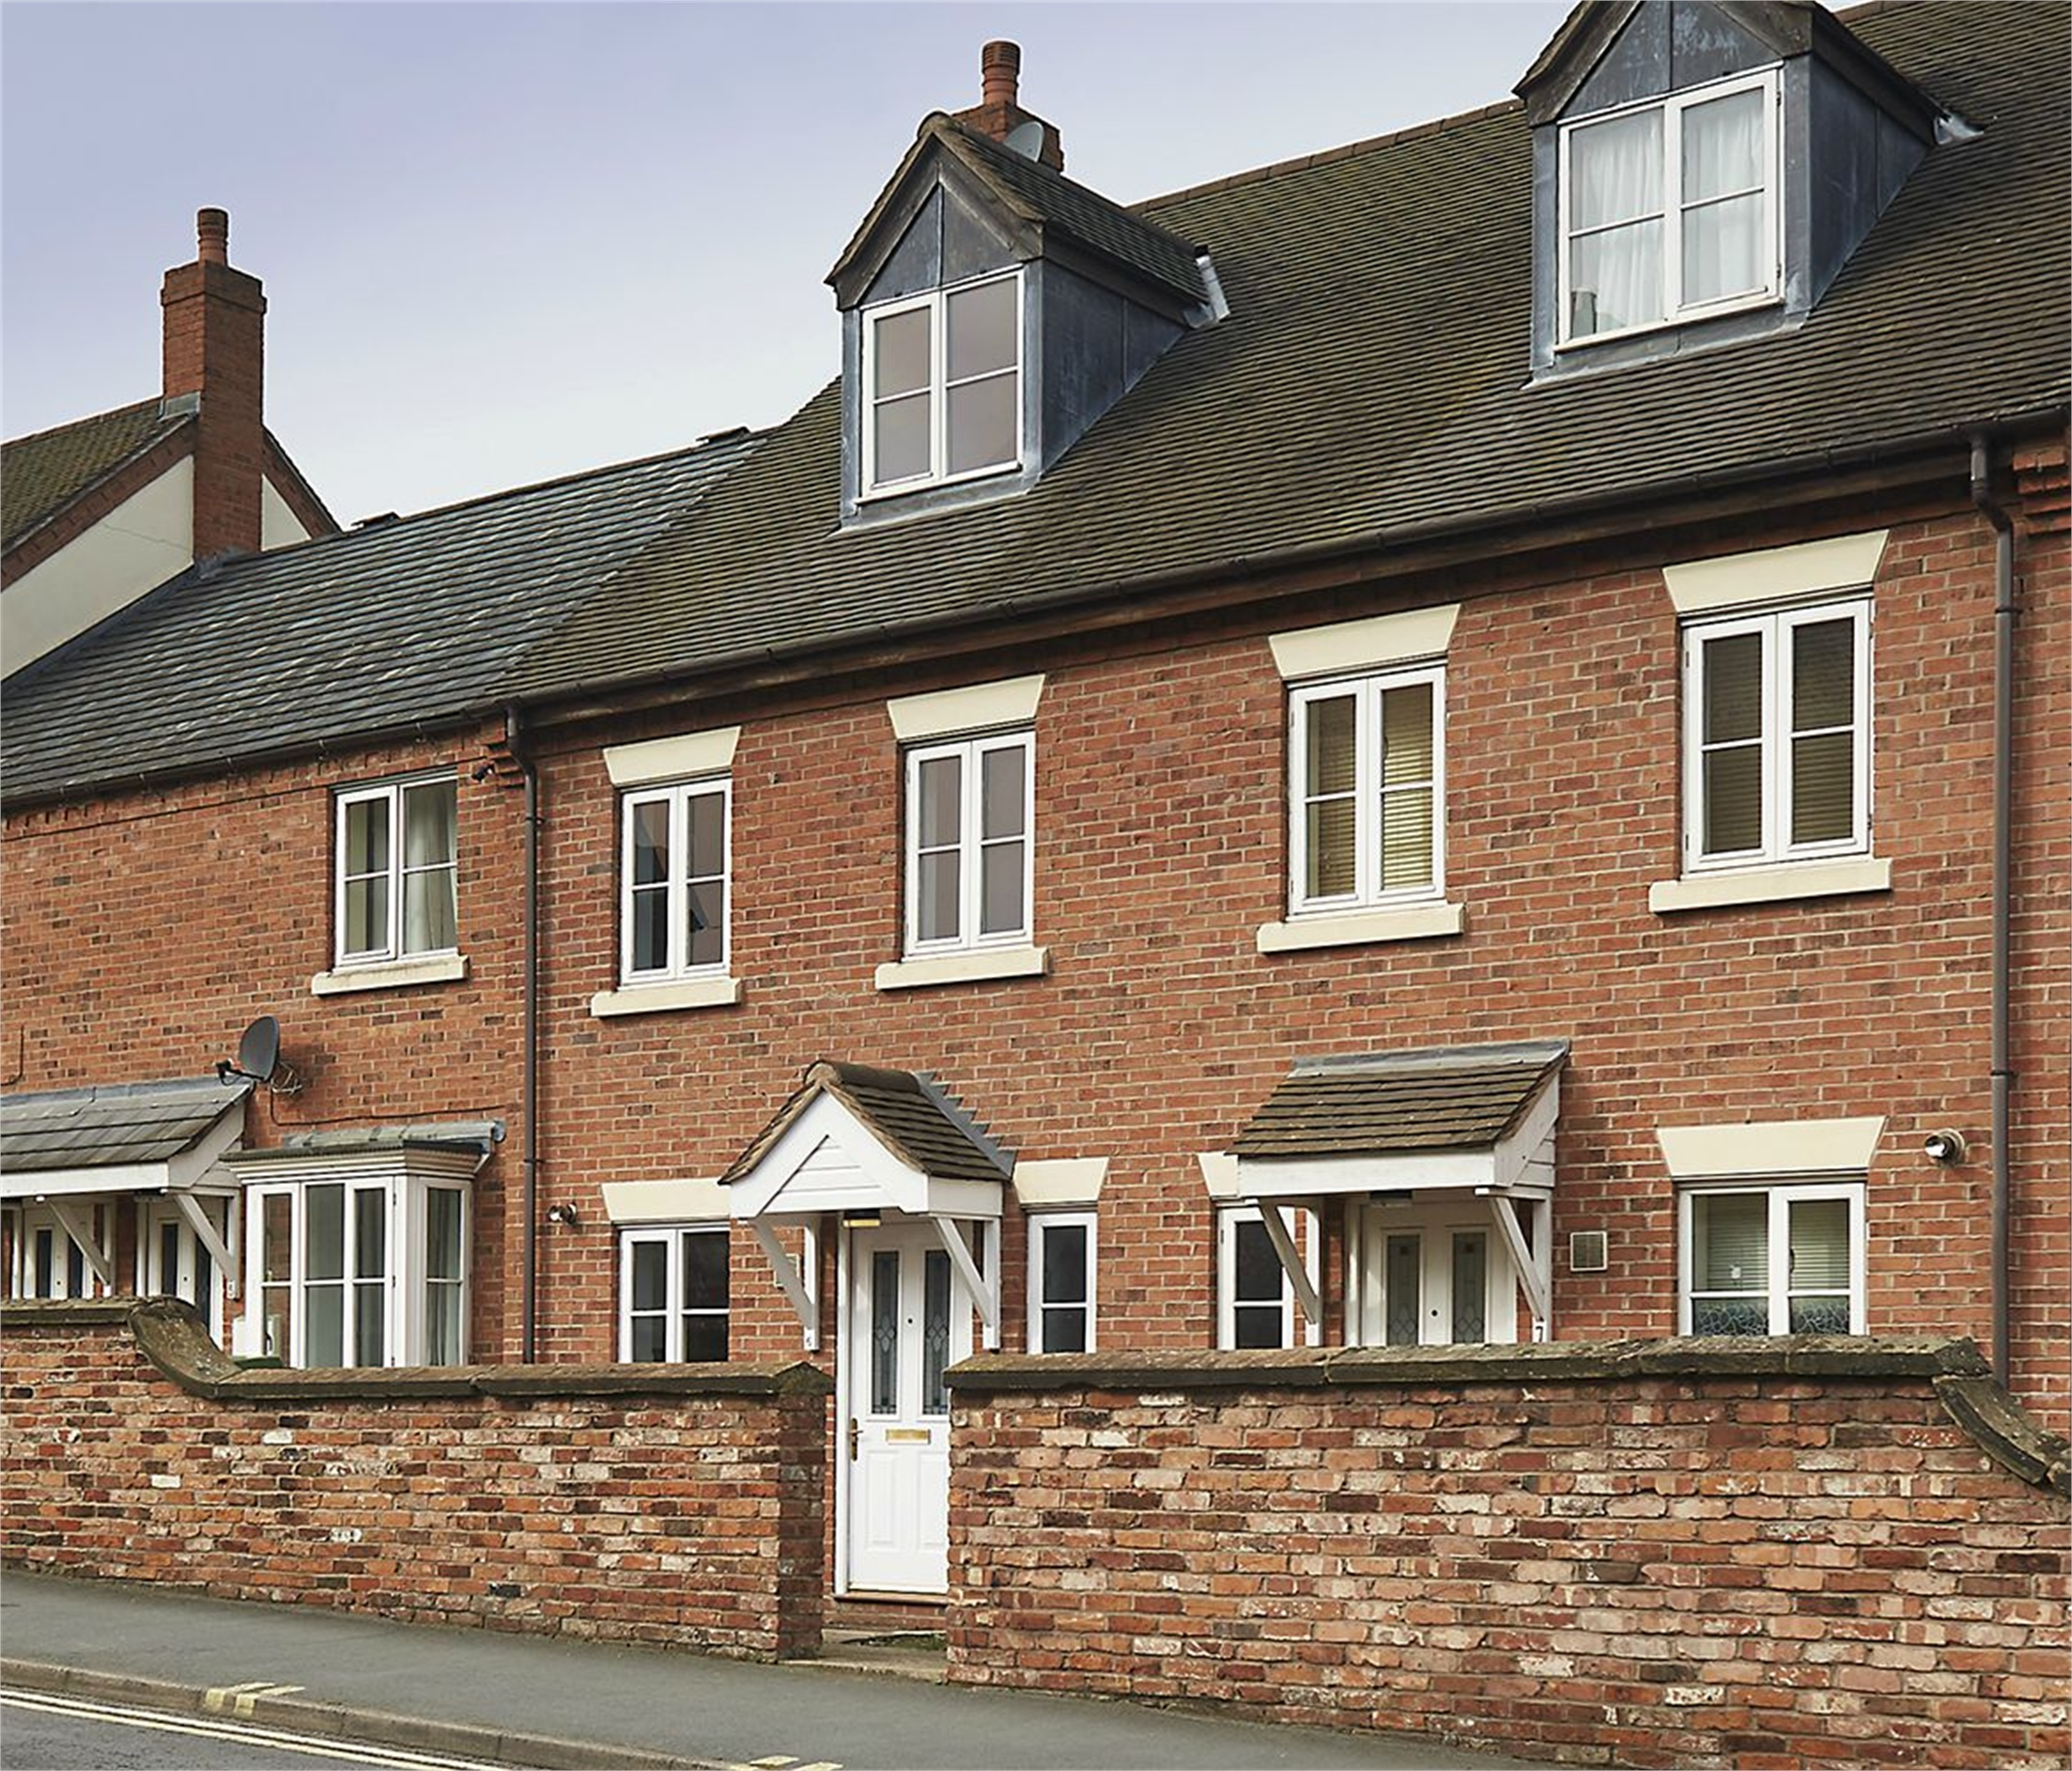 3 Bedrooms Terraced House for sale in 6 The Smithfields, Newport, Shropshire, TF10